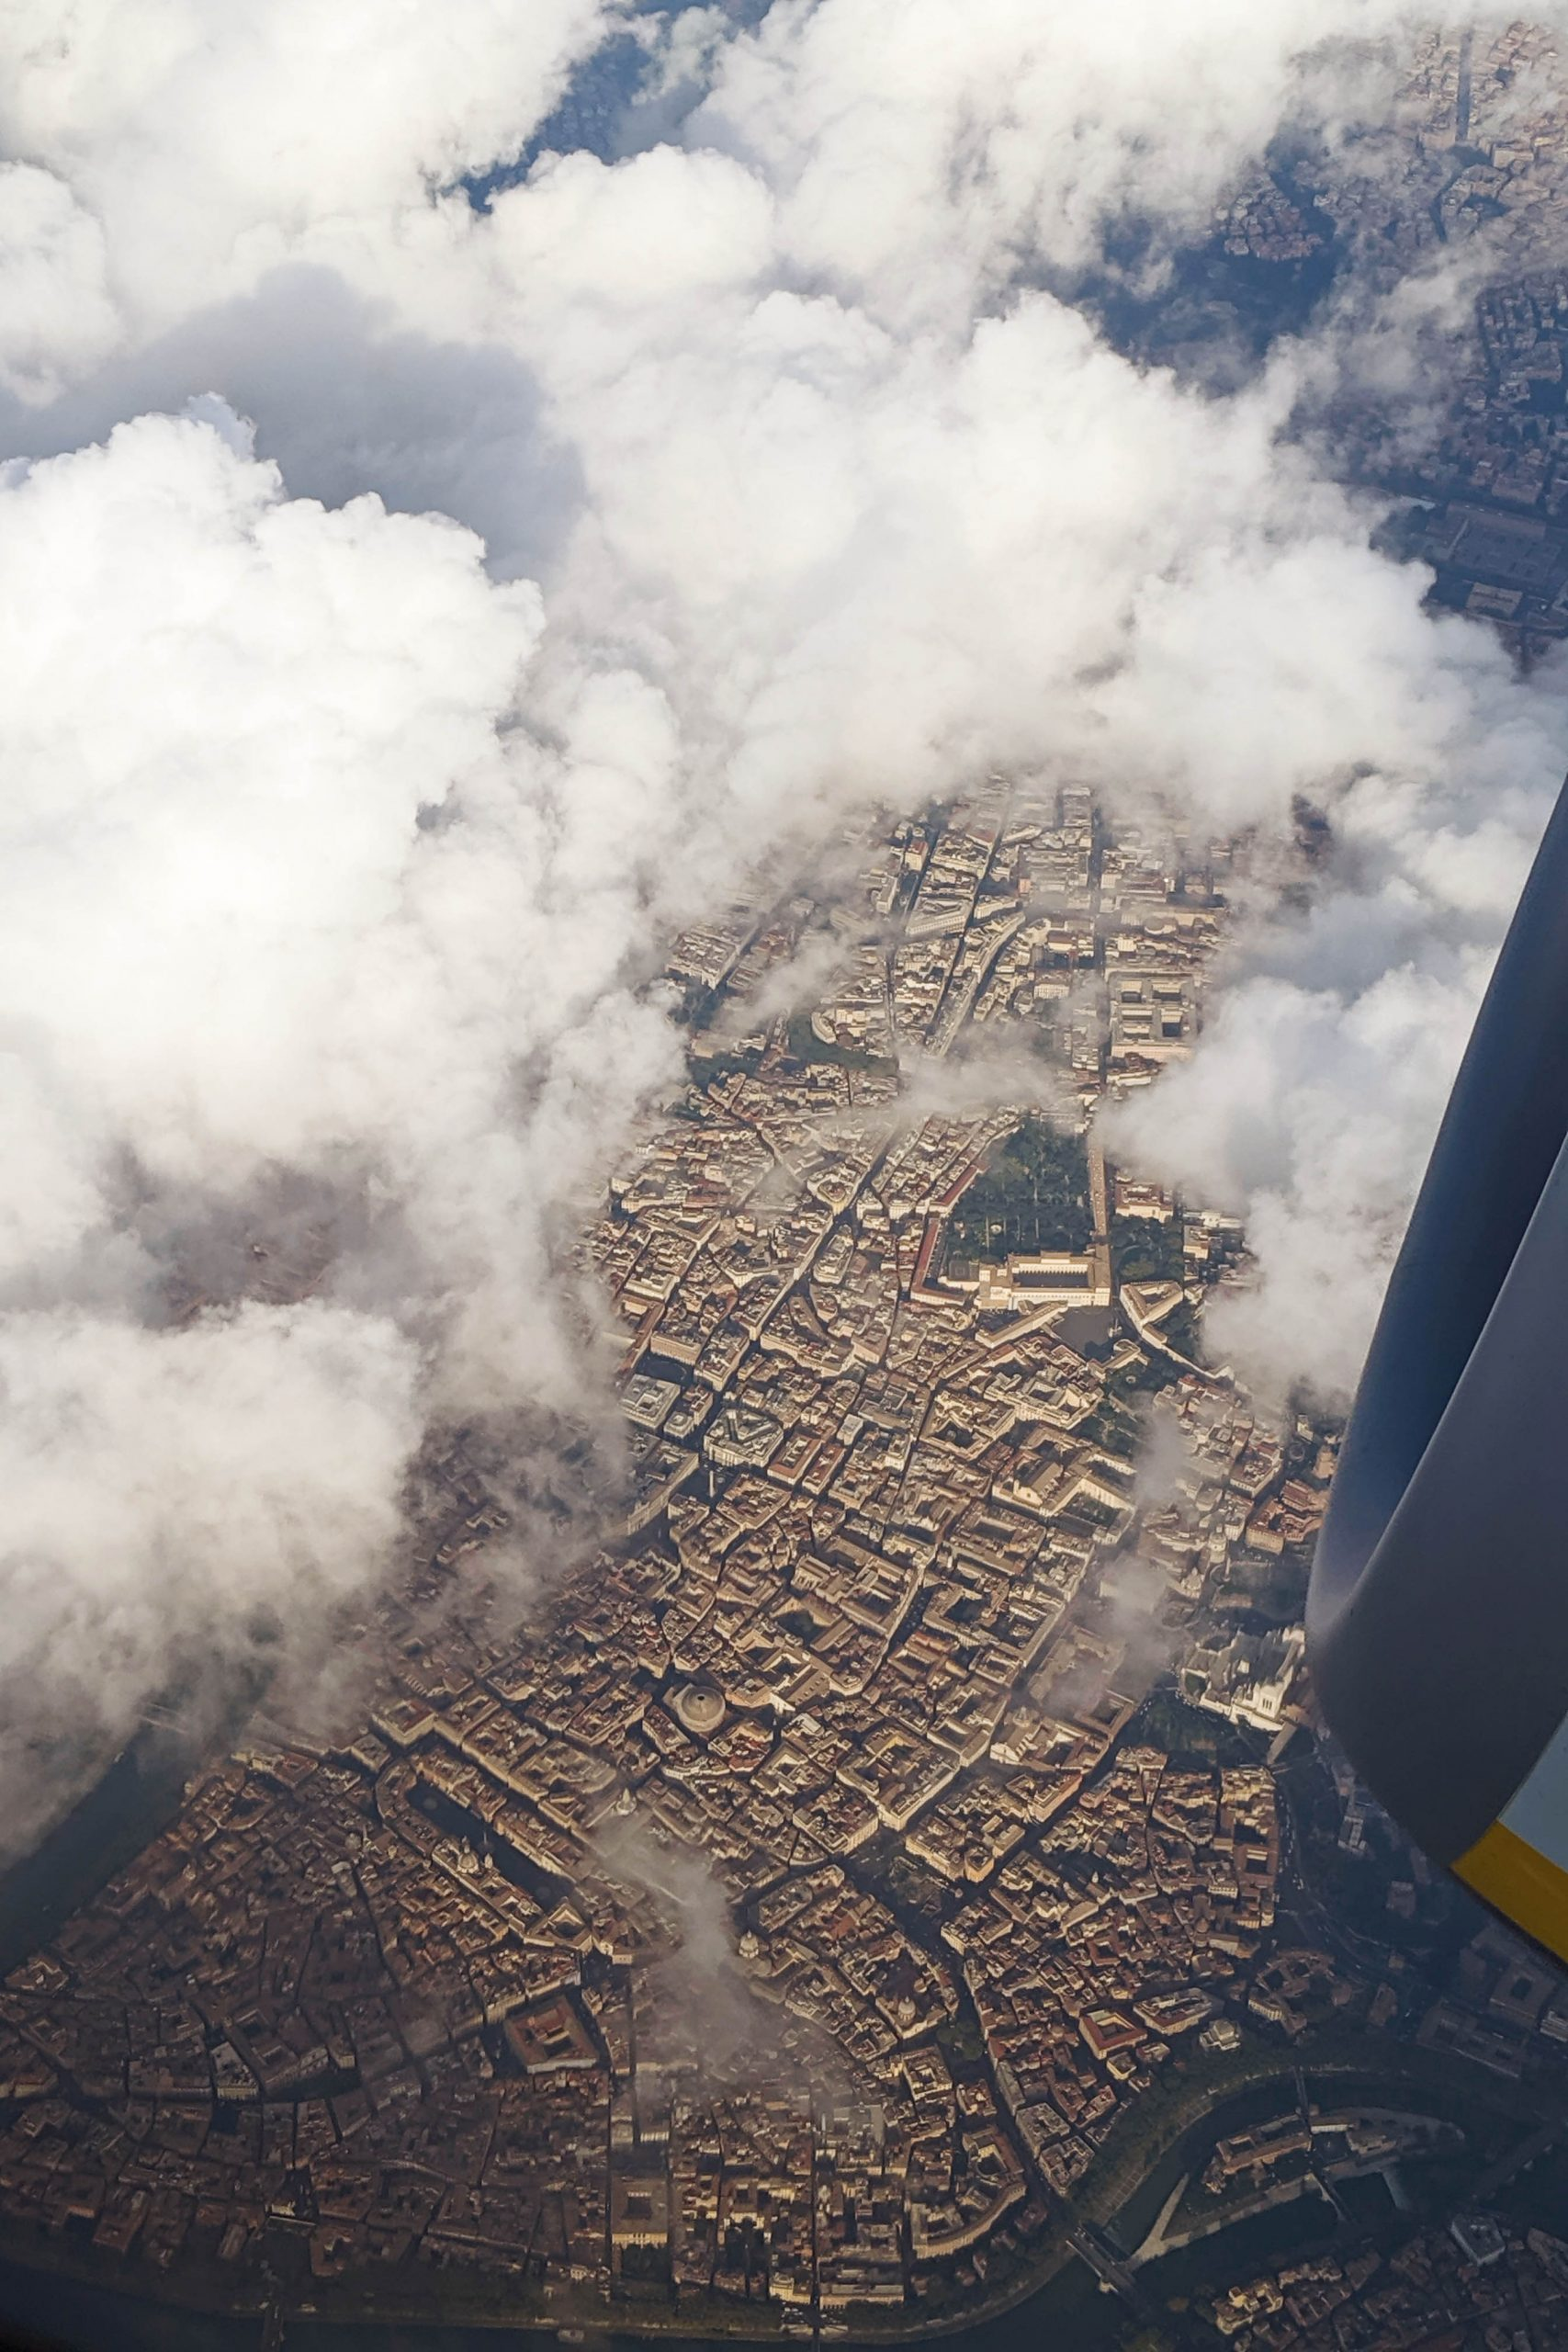 The city centre of Rome, Italy, view from the airplane